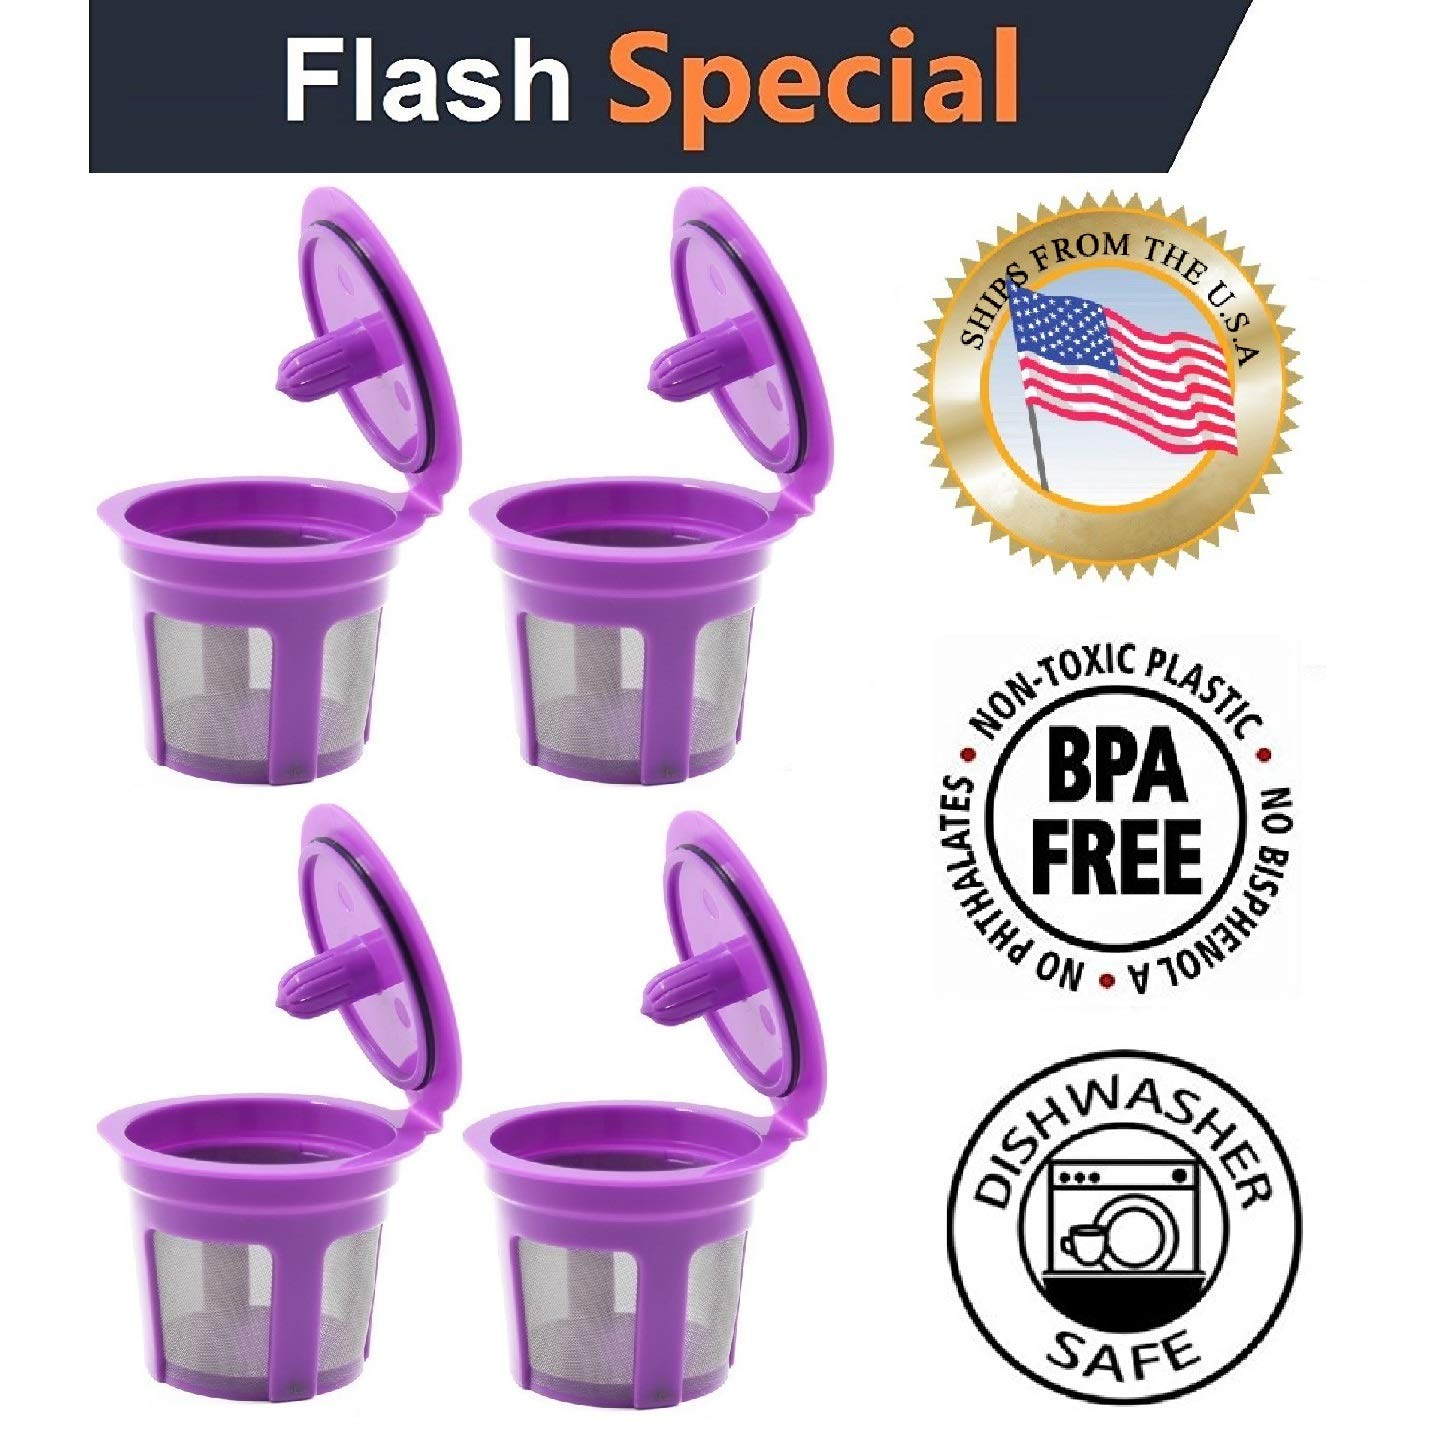 Fill N Save 4 Reusable K Cups, Refillable Keurig Filters for Keurig 2.0 and 1.0 Coffee Machines. Excellent Filter Replacement to Coffee Pods and Accessories